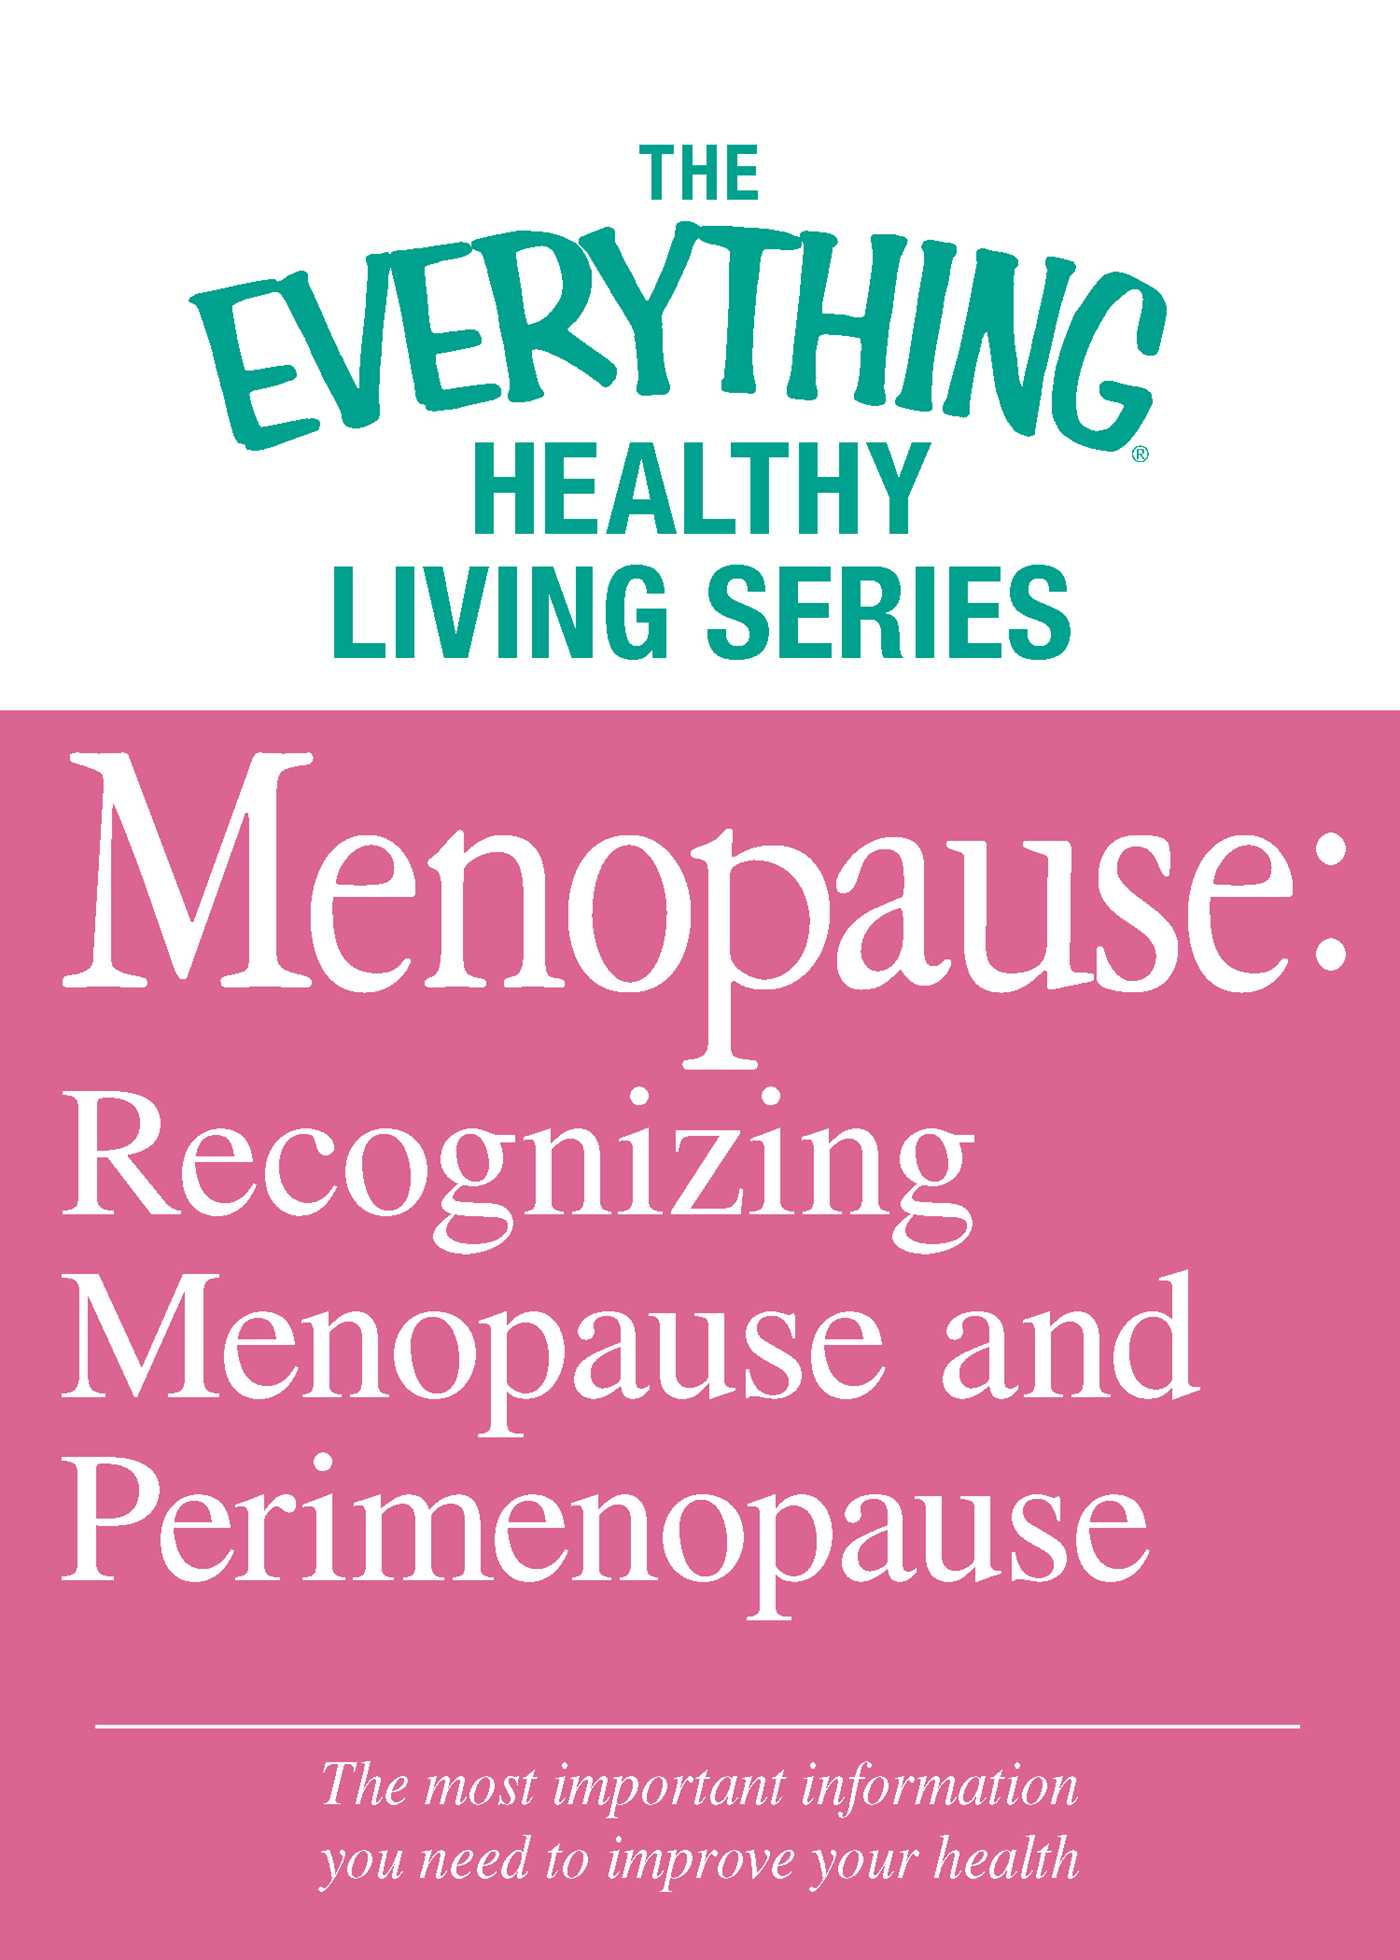 Menopause recognizing menopause and perimenopause 9781440561672 hr